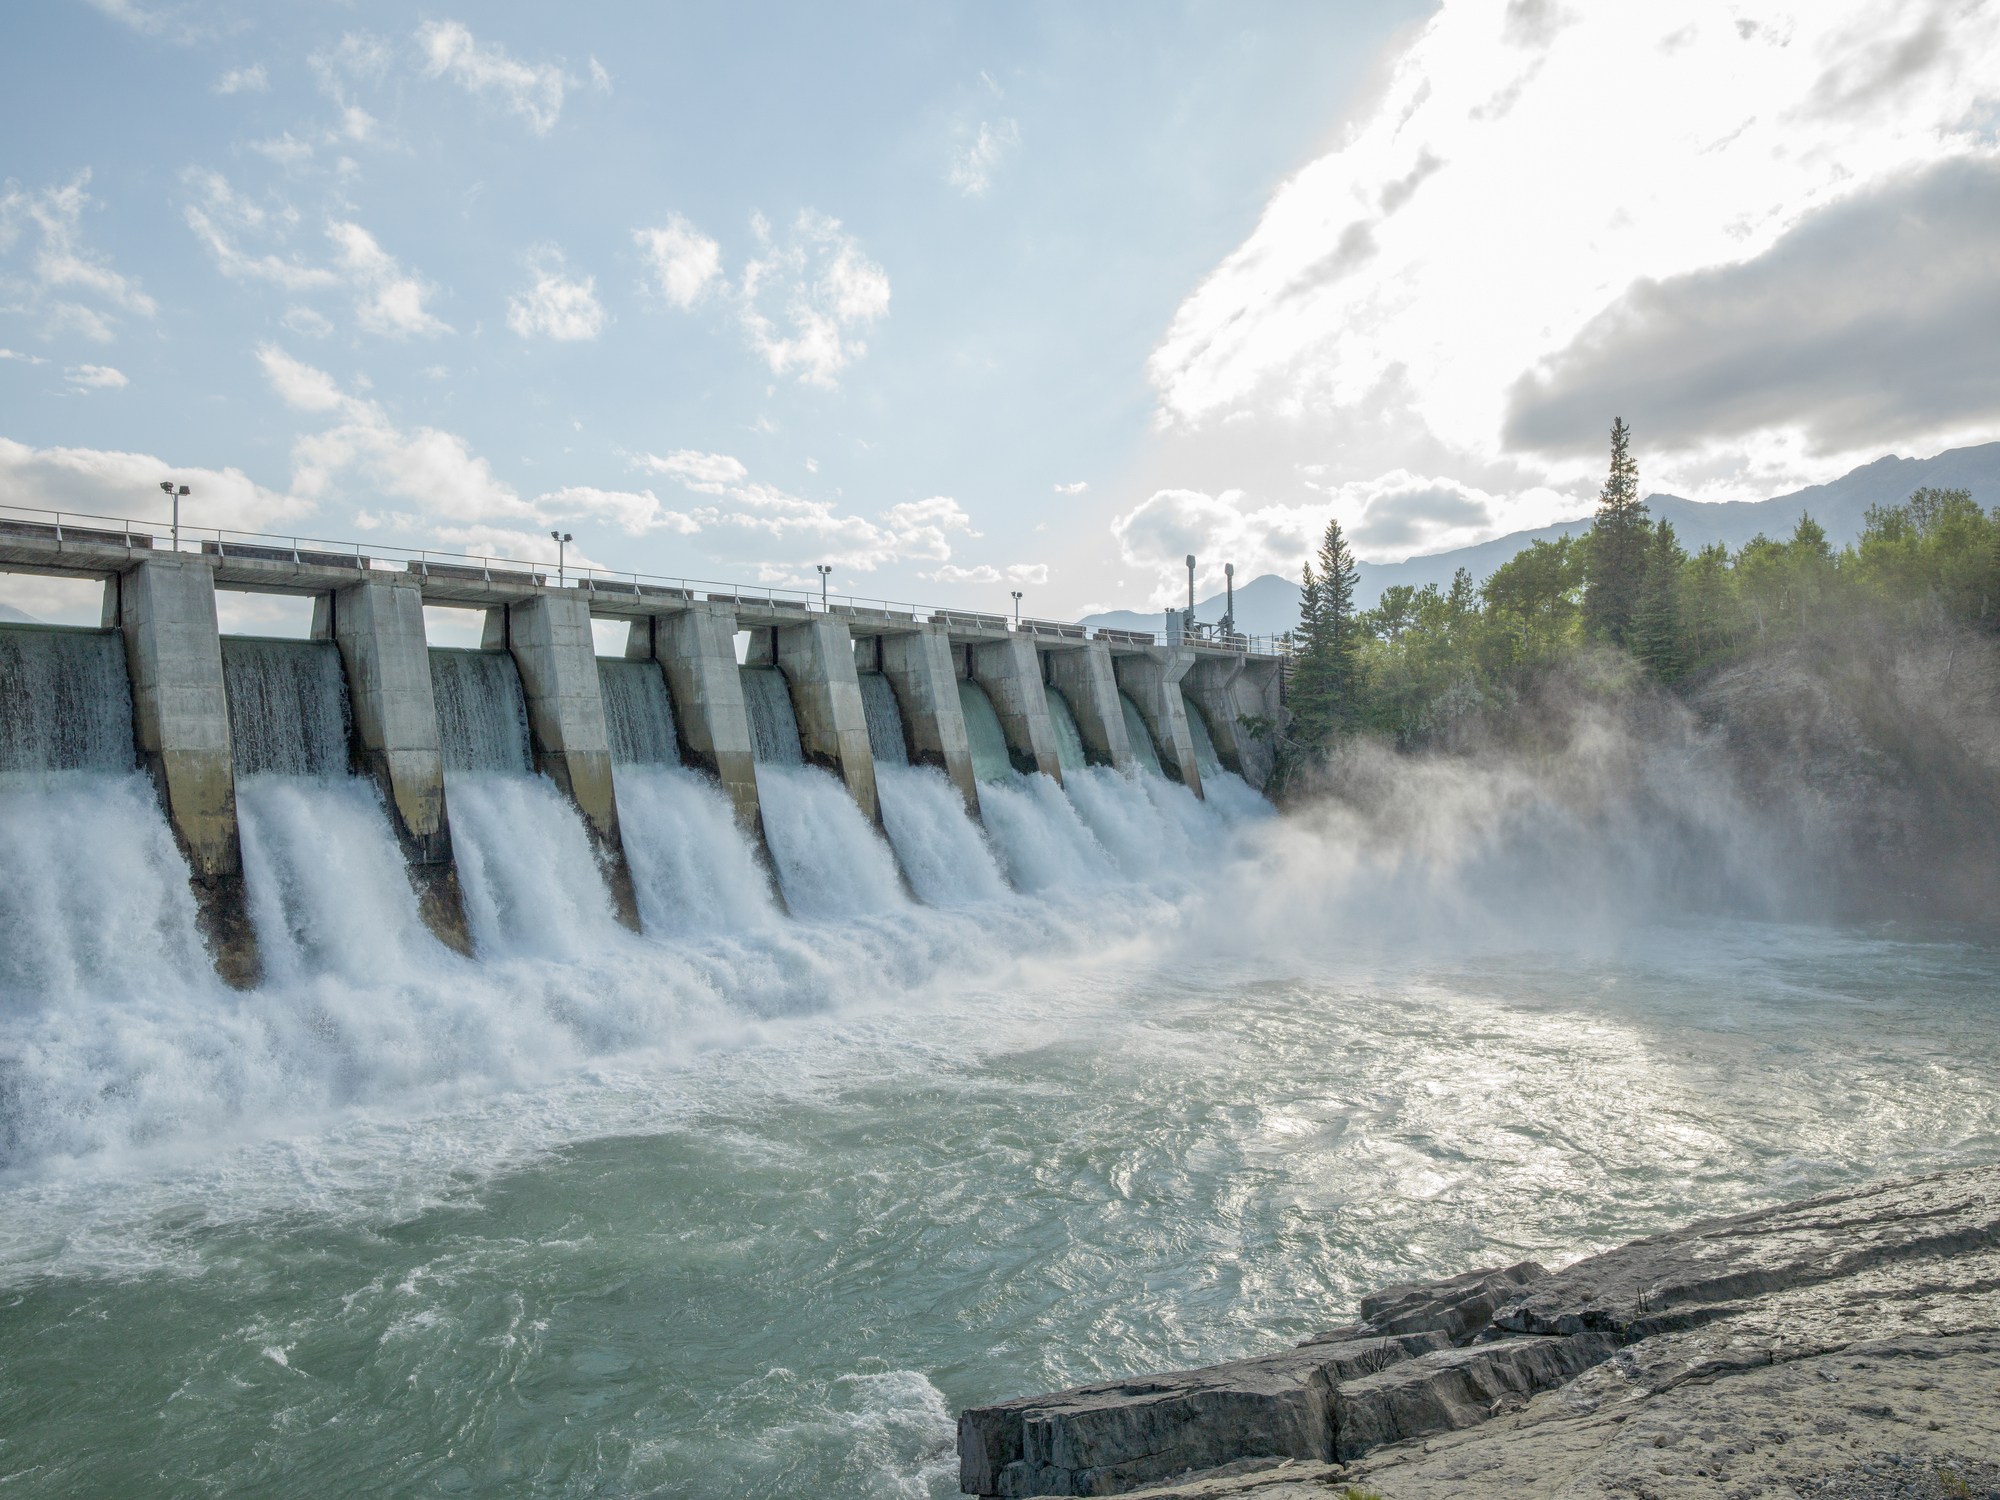 Fast running water at a hydropower plant in Canada.